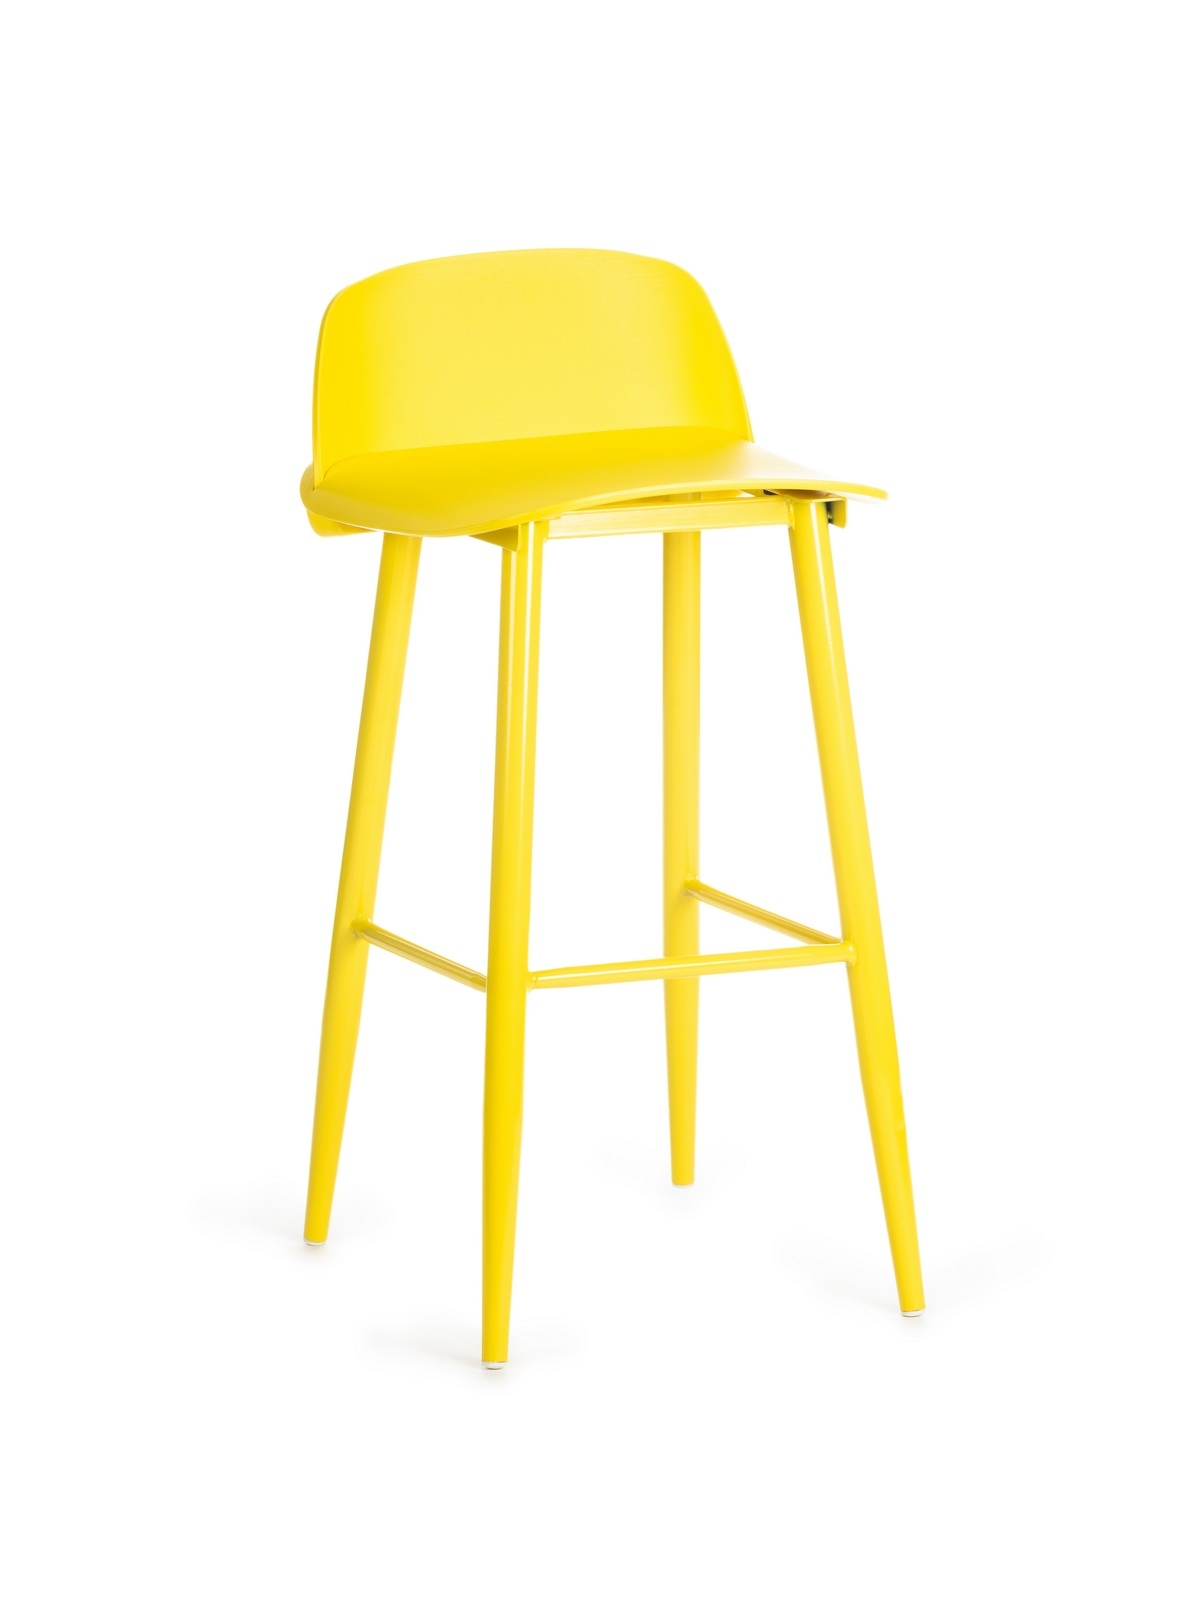 Scaun de bar din plastic, cu picioare metalice Roxie Yellow, l45xA42xH75cm imagine